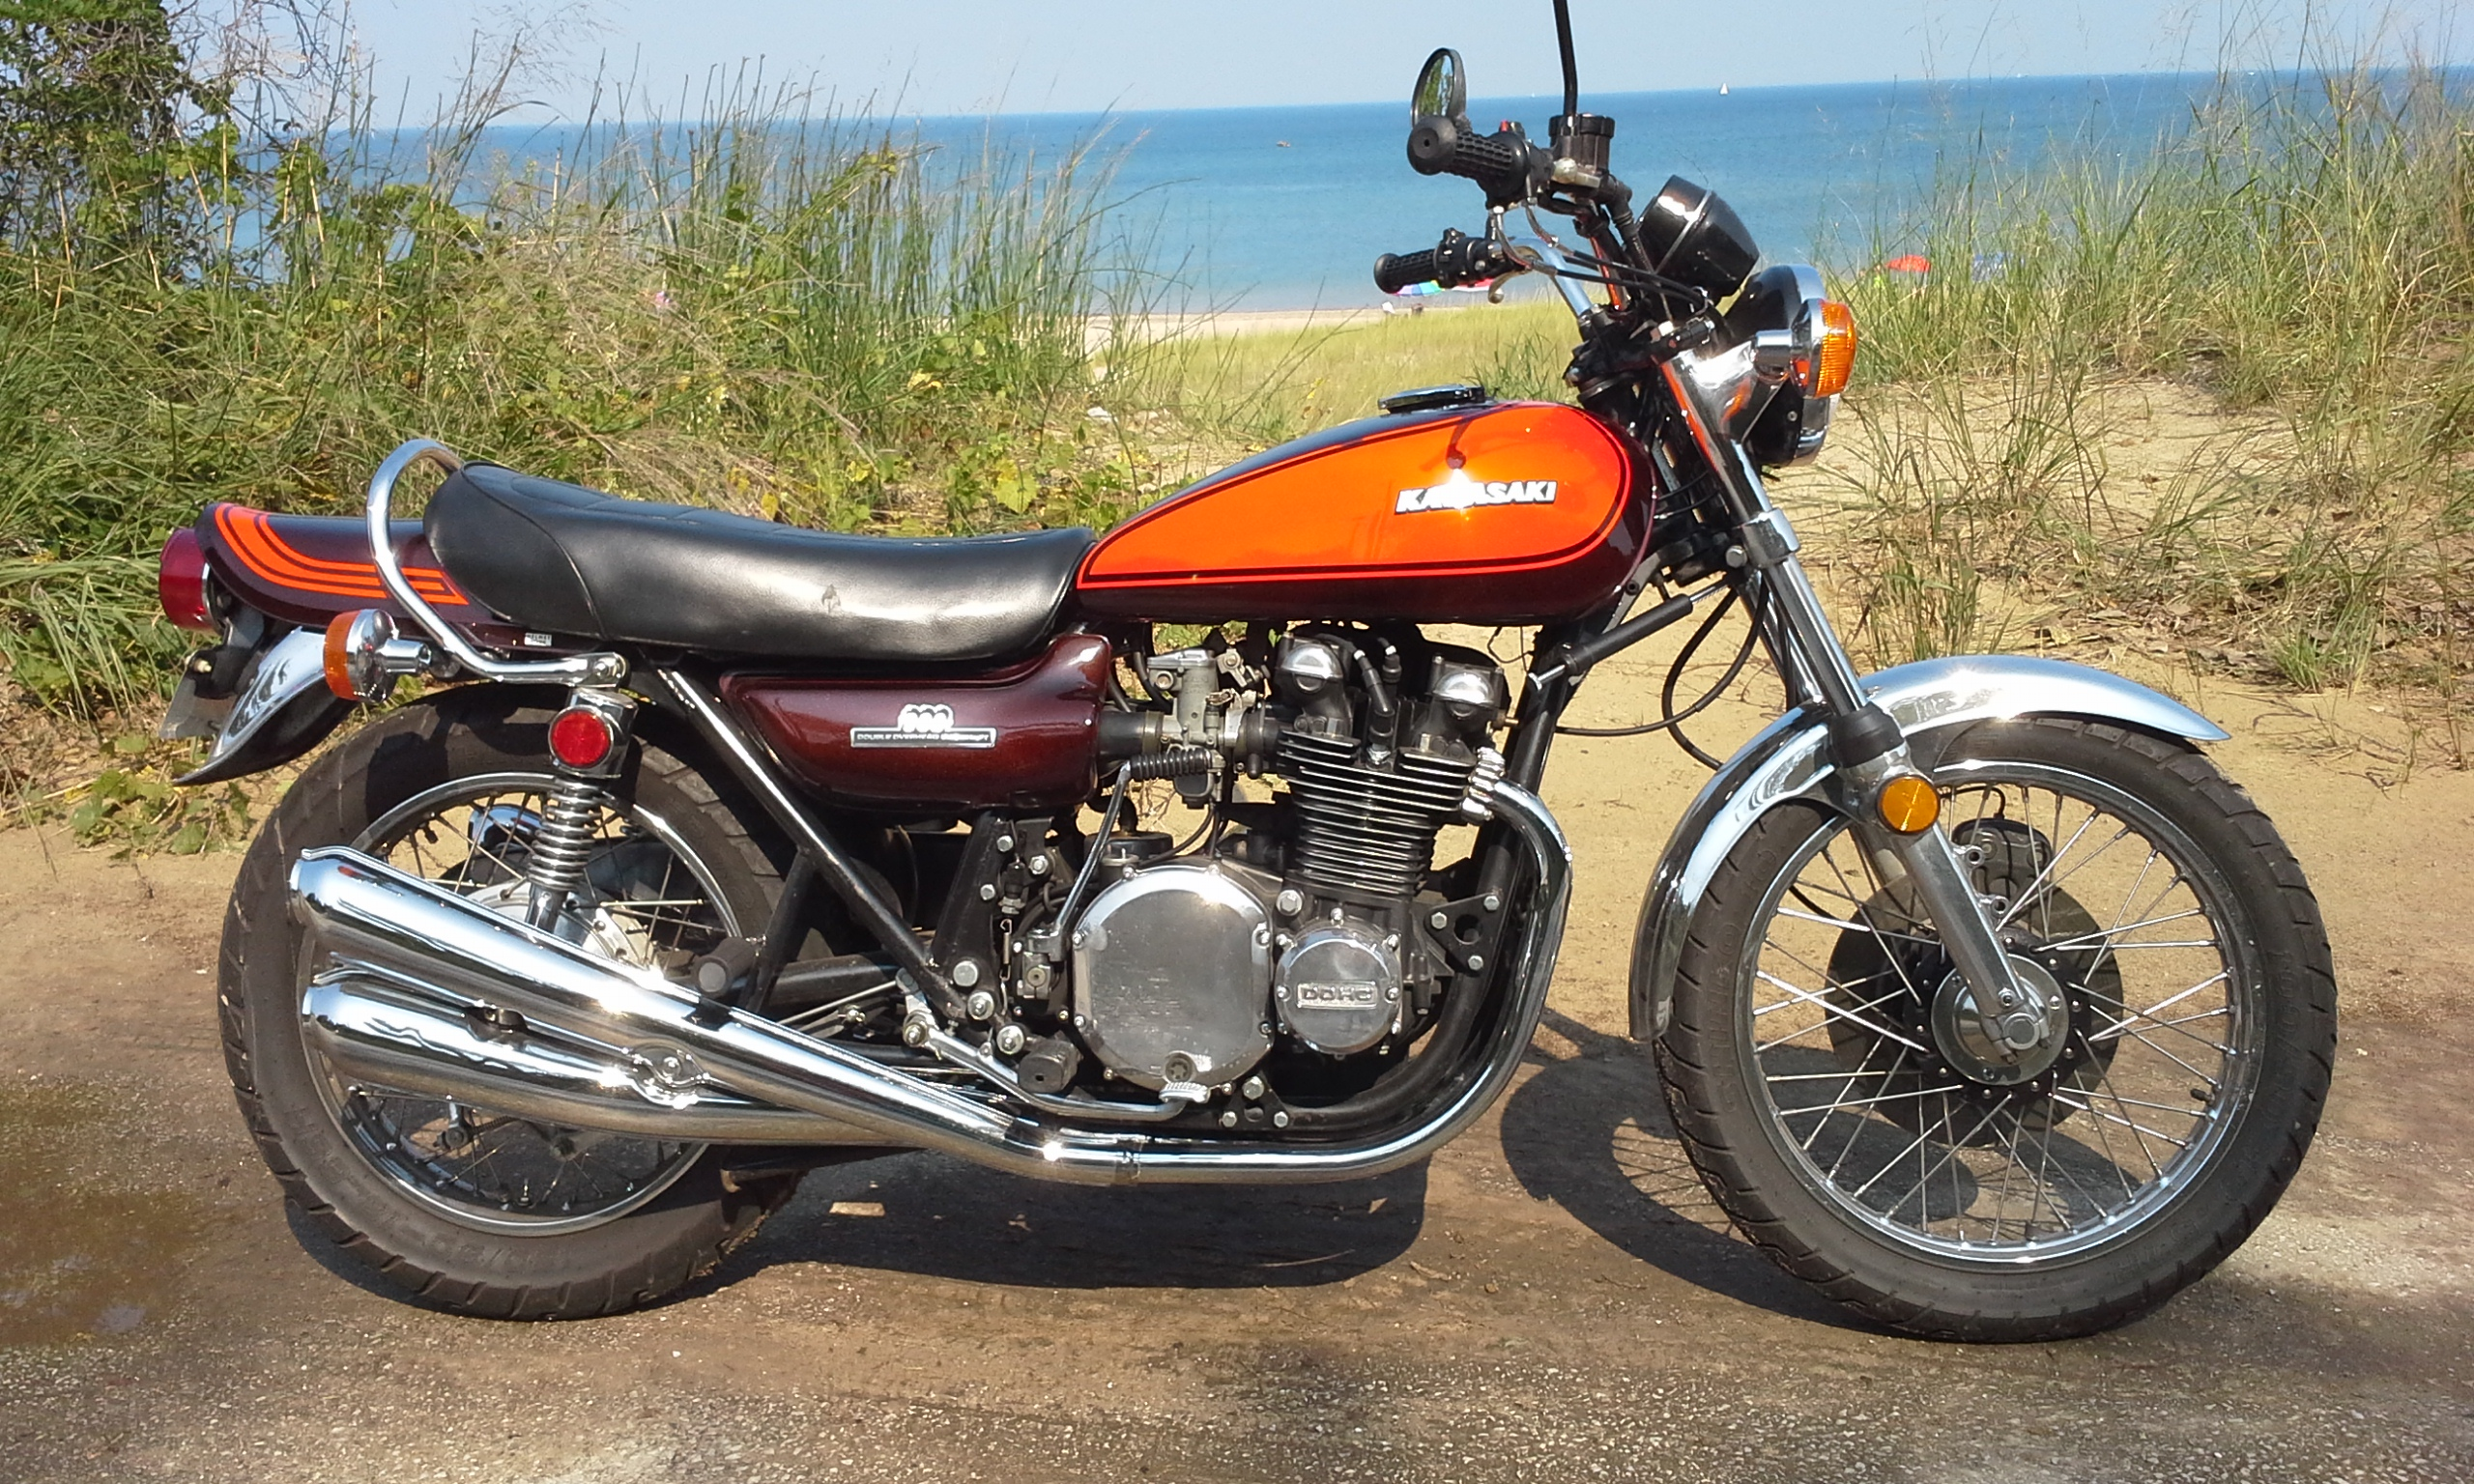 Bike Of The Year: GregZ's 1973 Z1 900.